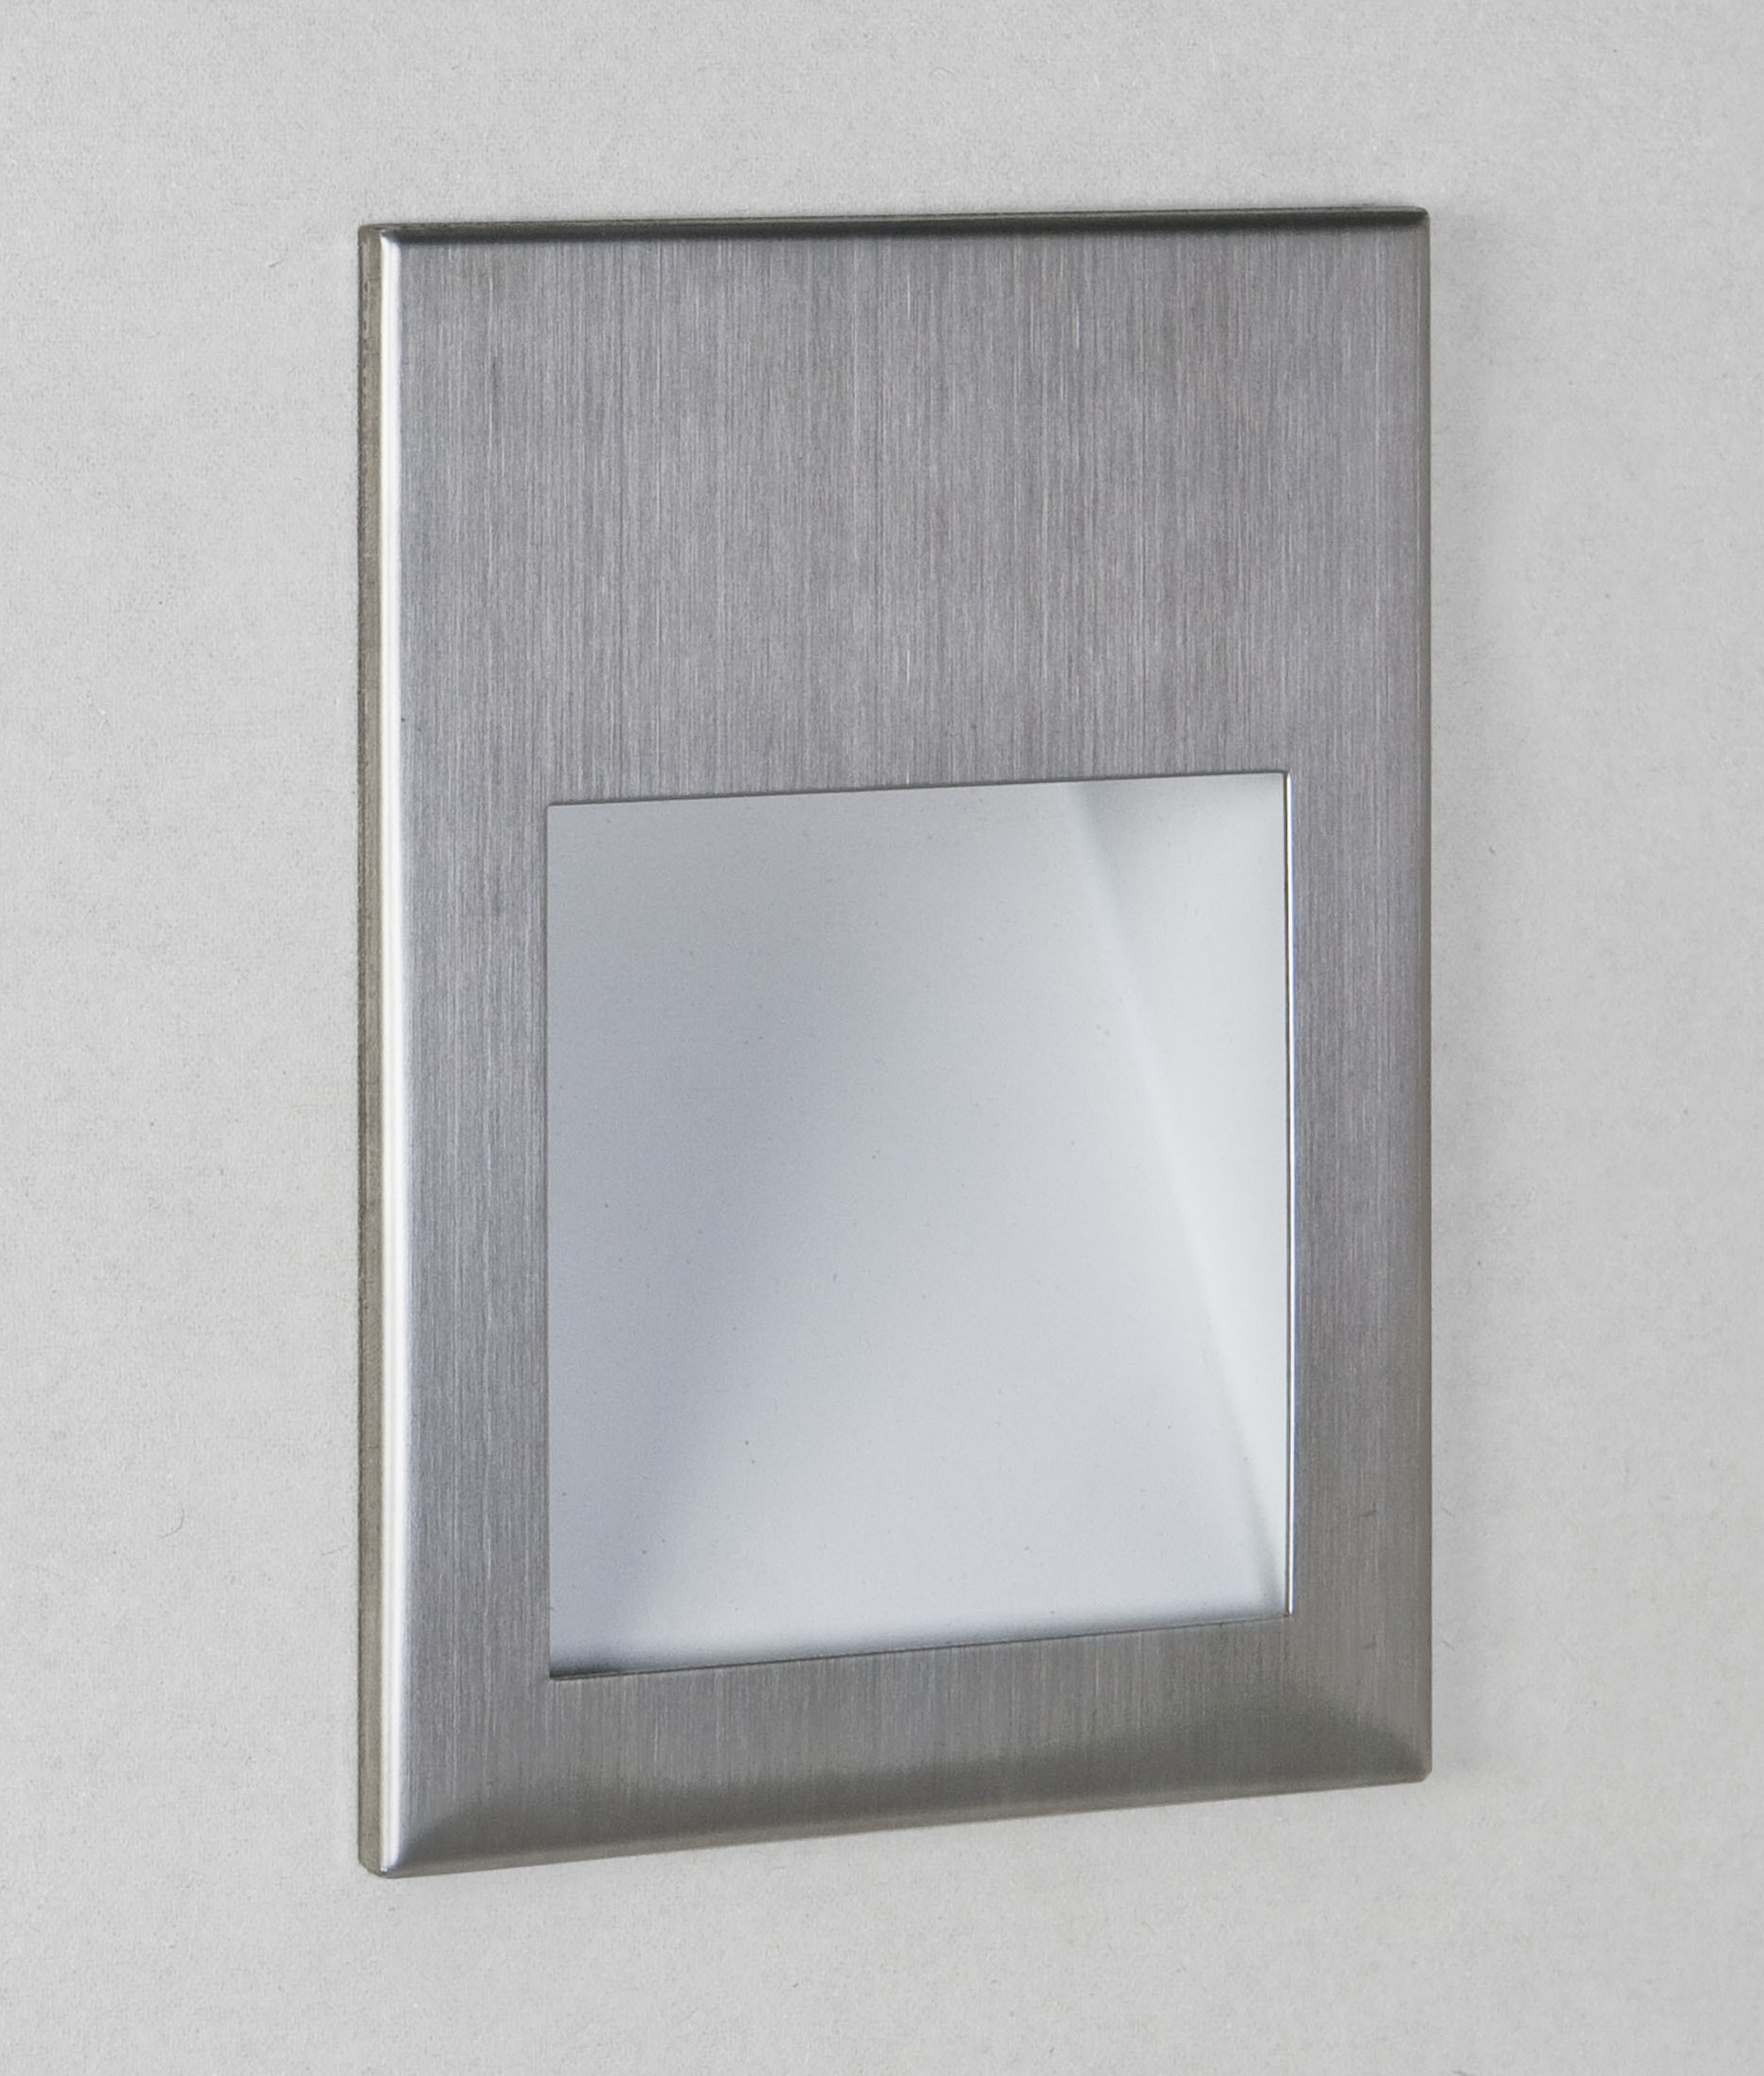 Low Level Guide Light Wall Recessed Led